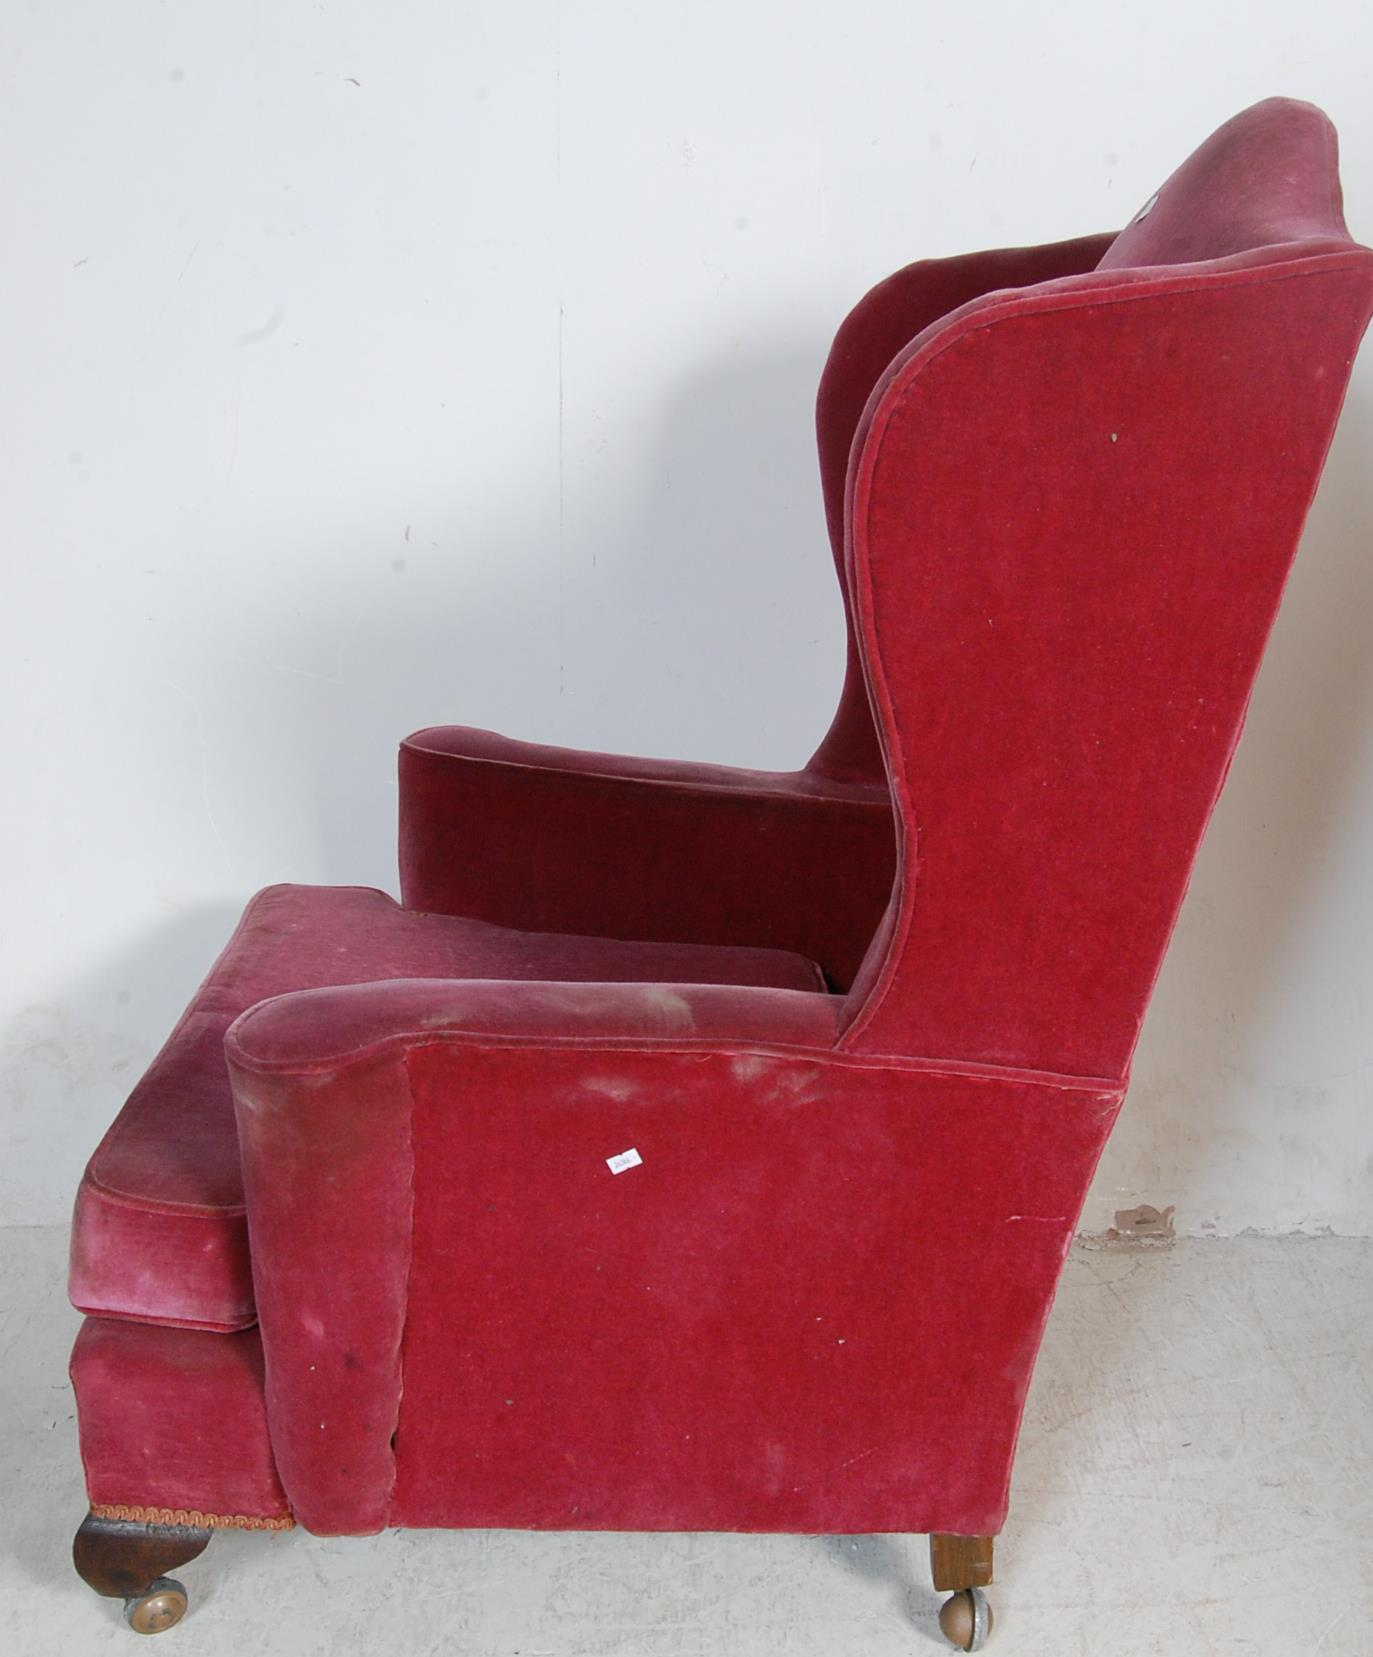 LATE VICTORIAN 19TH CENTURY QUEEN ANNE WING BACK ARMCHAIR - Image 5 of 6